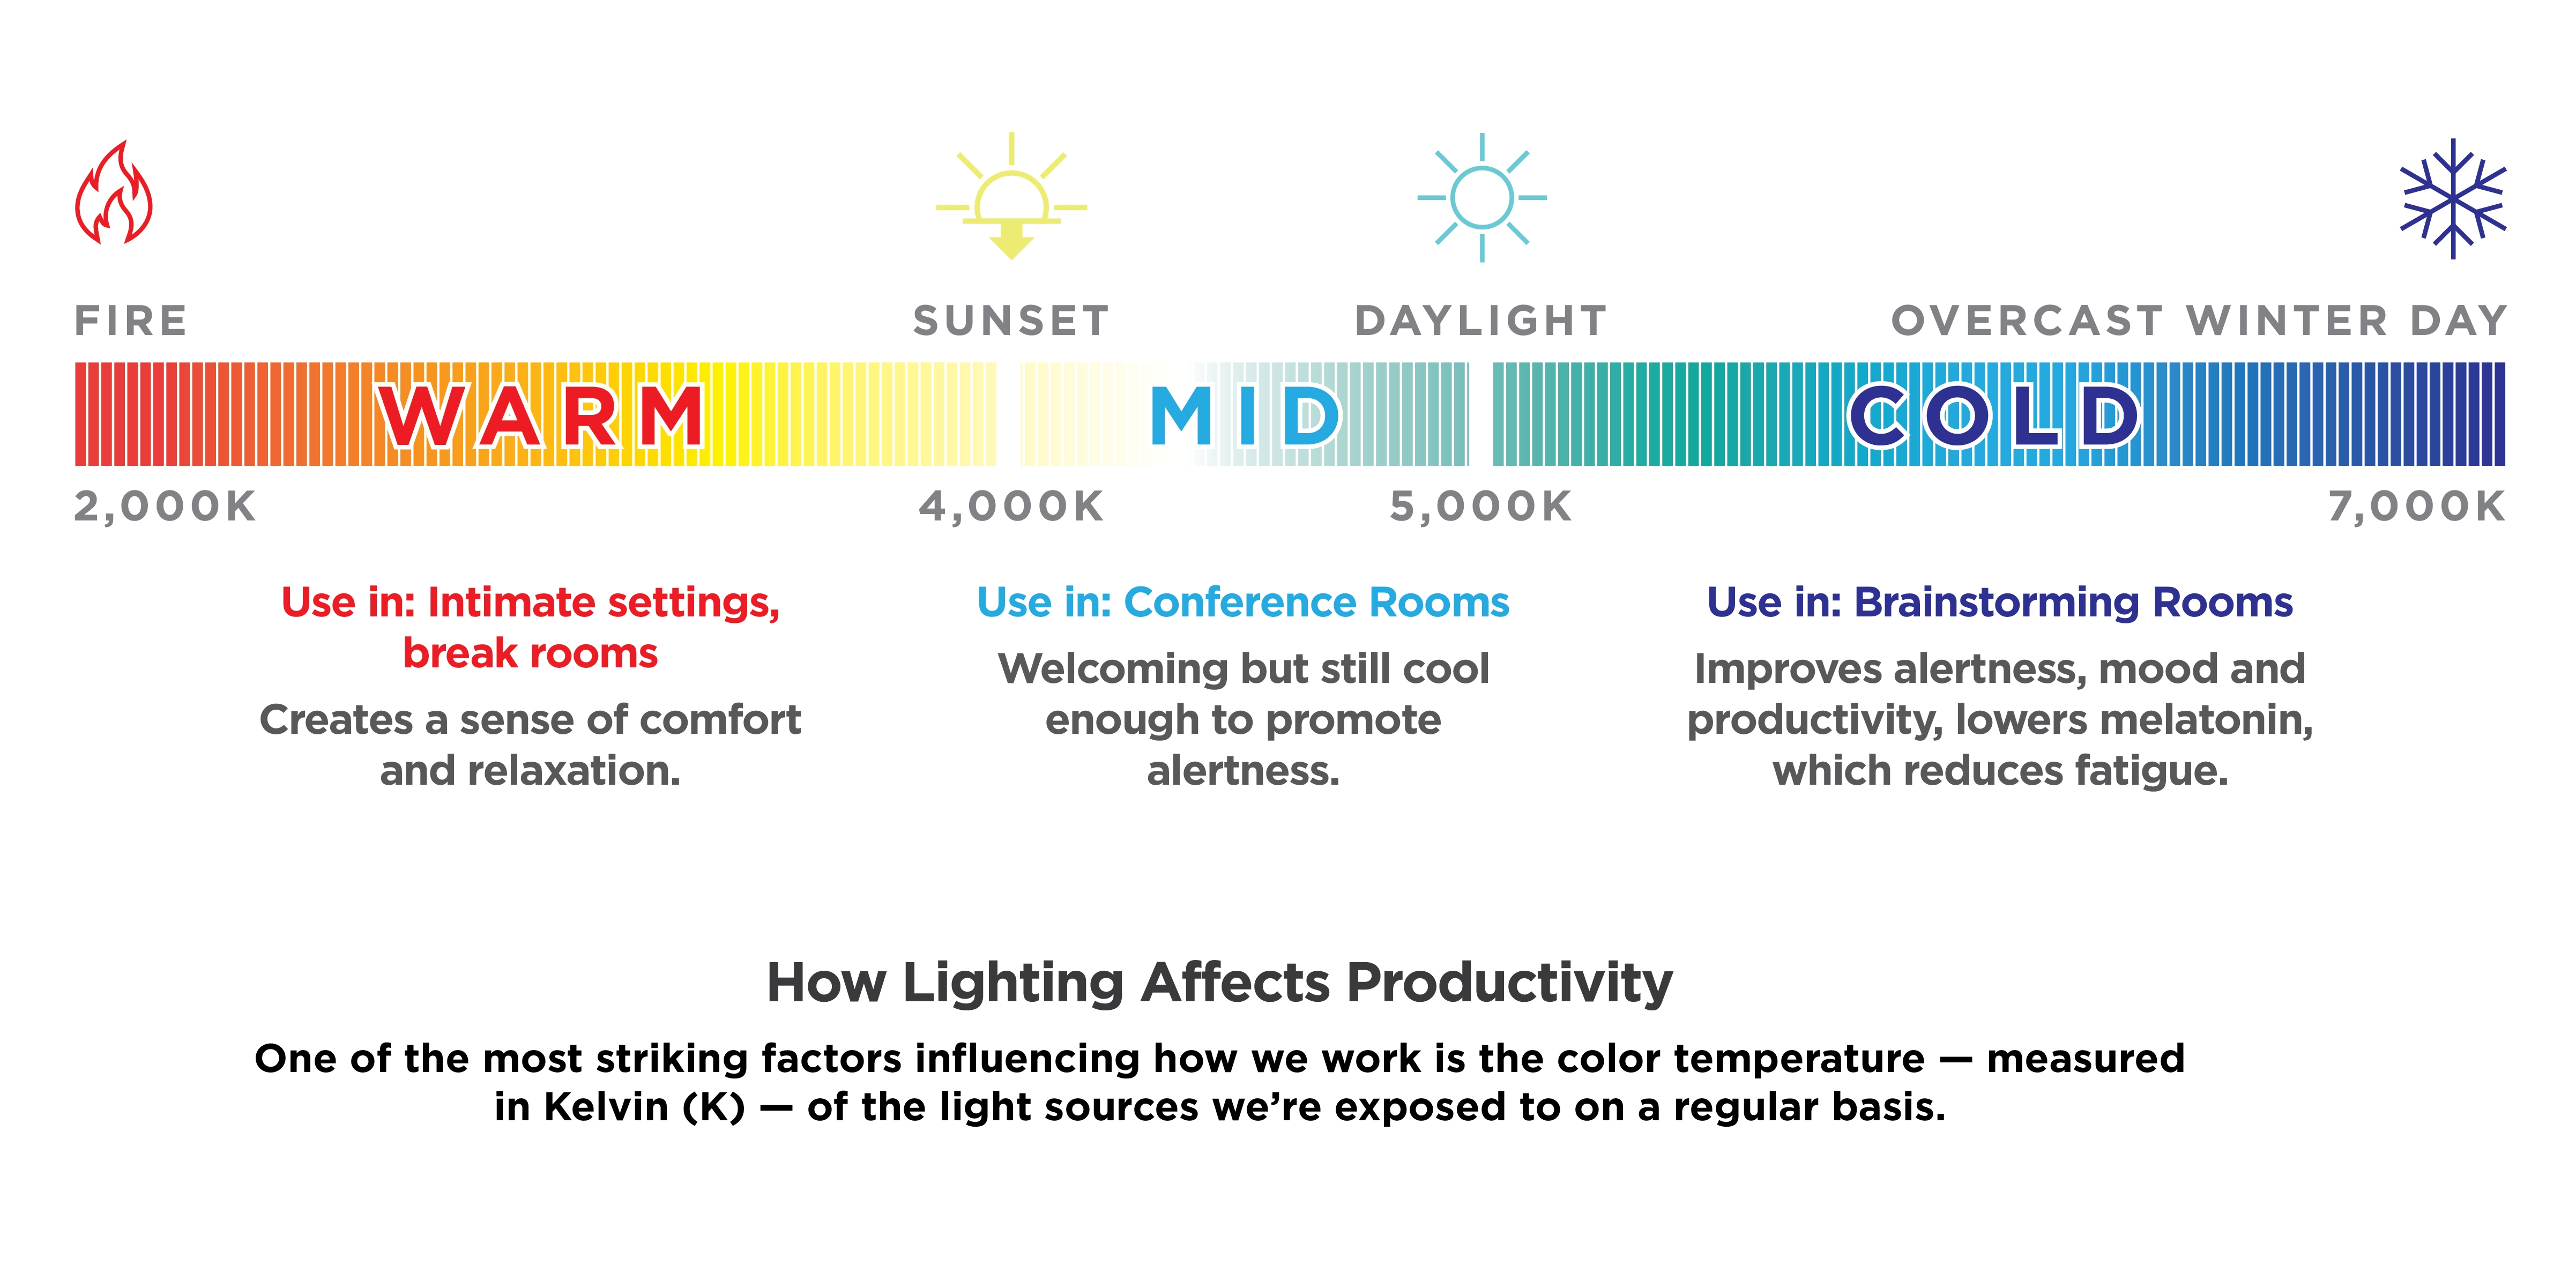 How Lighting Affects Productivity